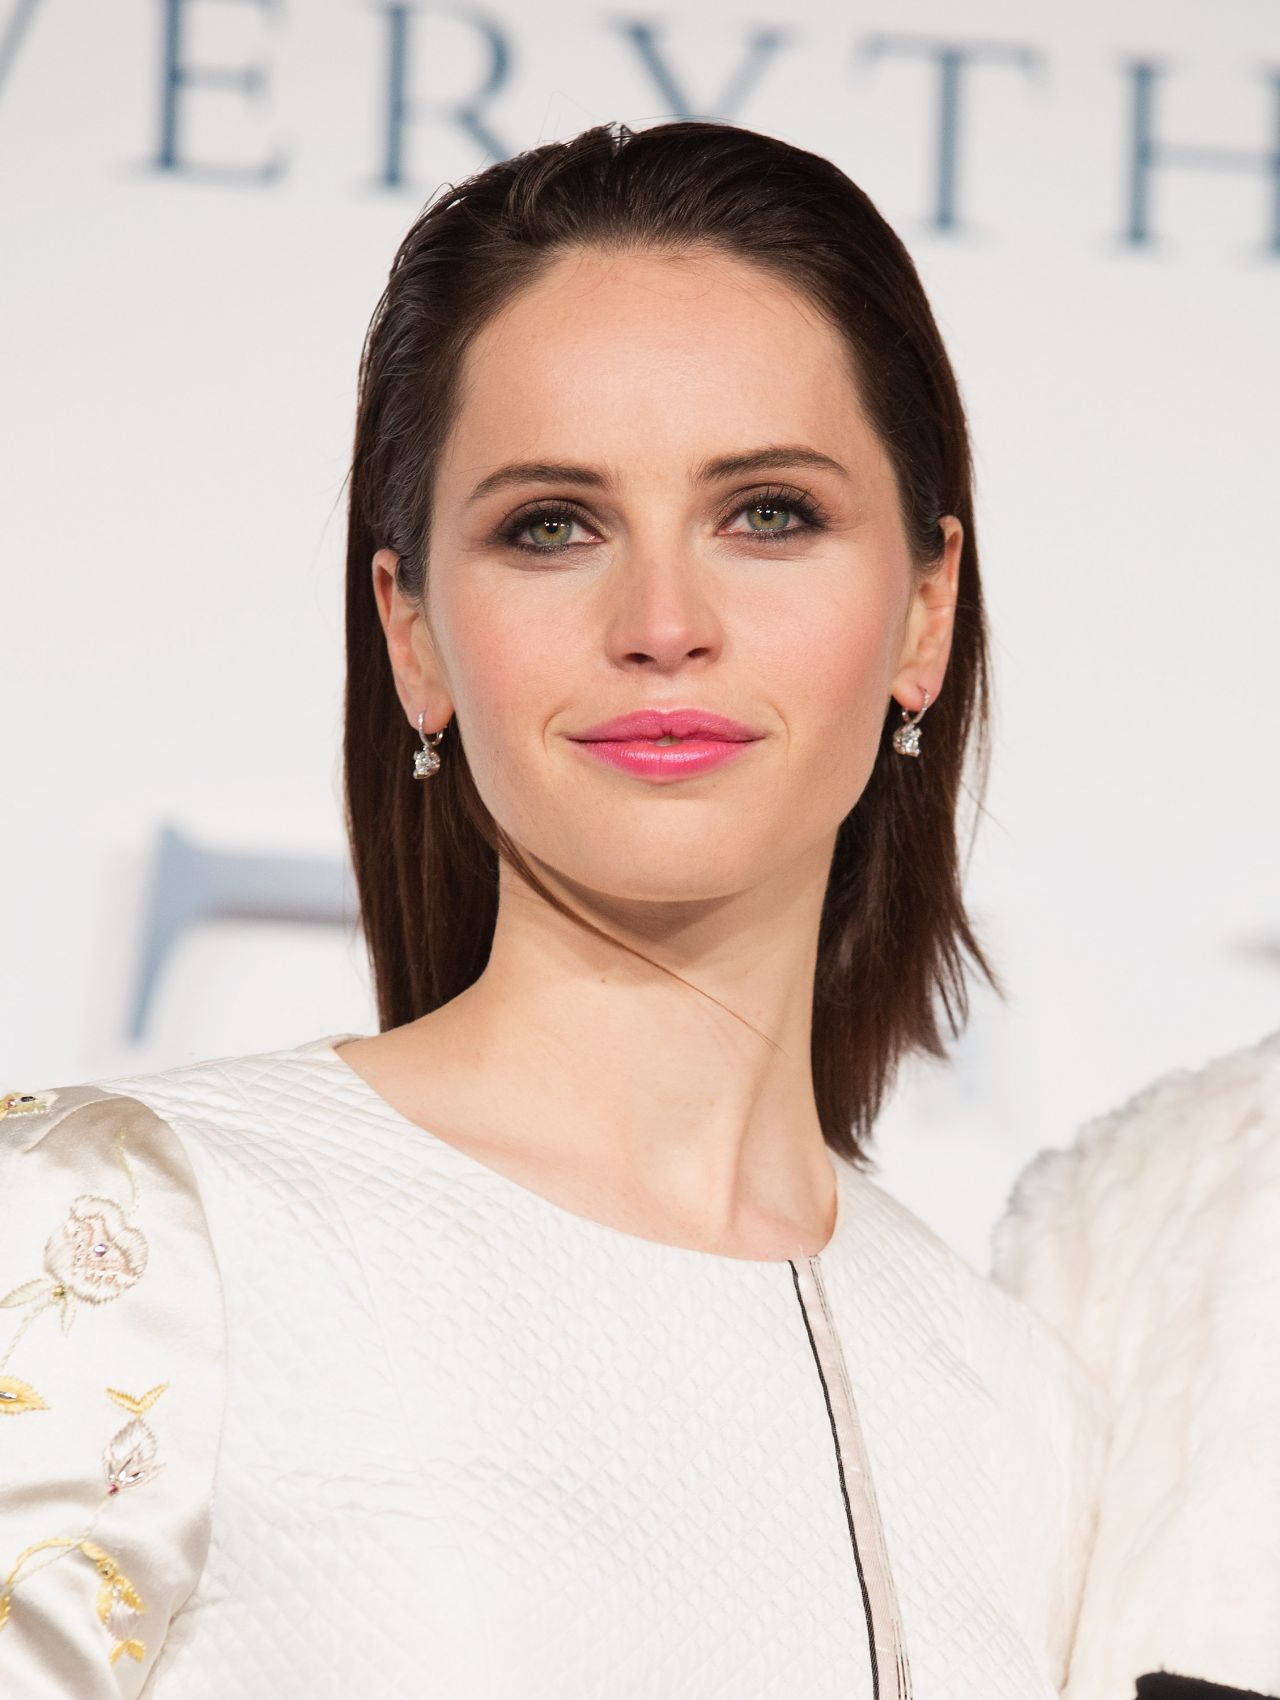 Felicity Jones – 'The Theory of Everything' Premiere in London